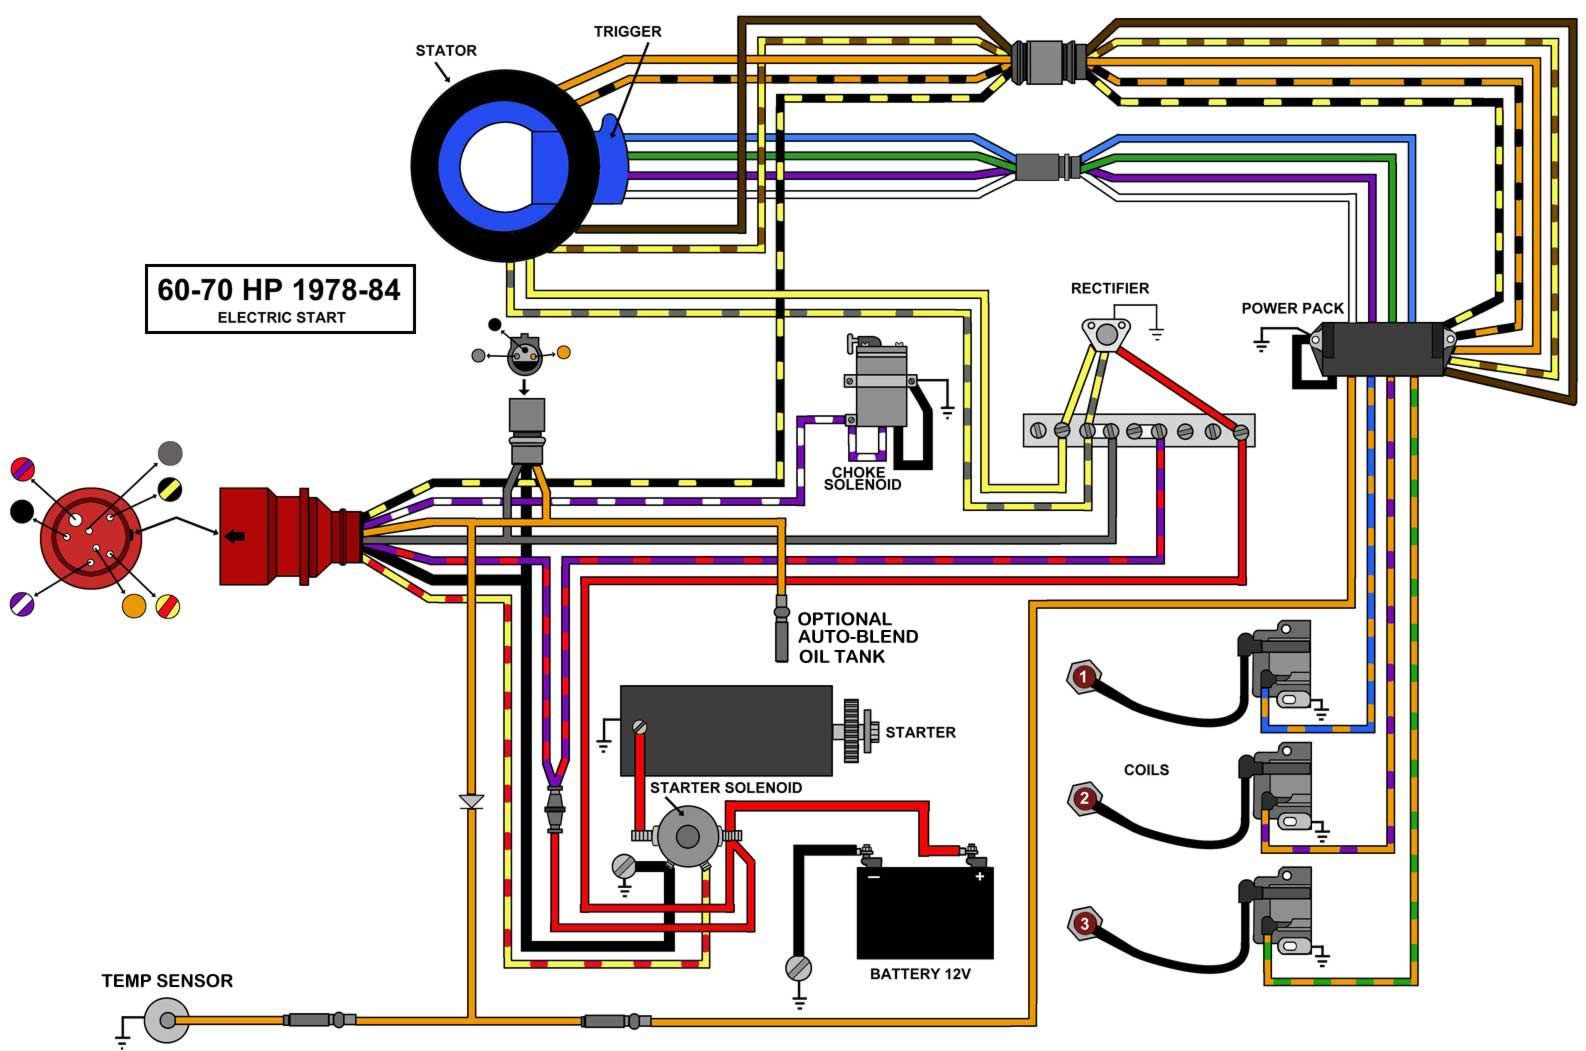 1987 Omc Co Wiring Diagram | Wiring Diagram Omc Co Wiring Diagram on